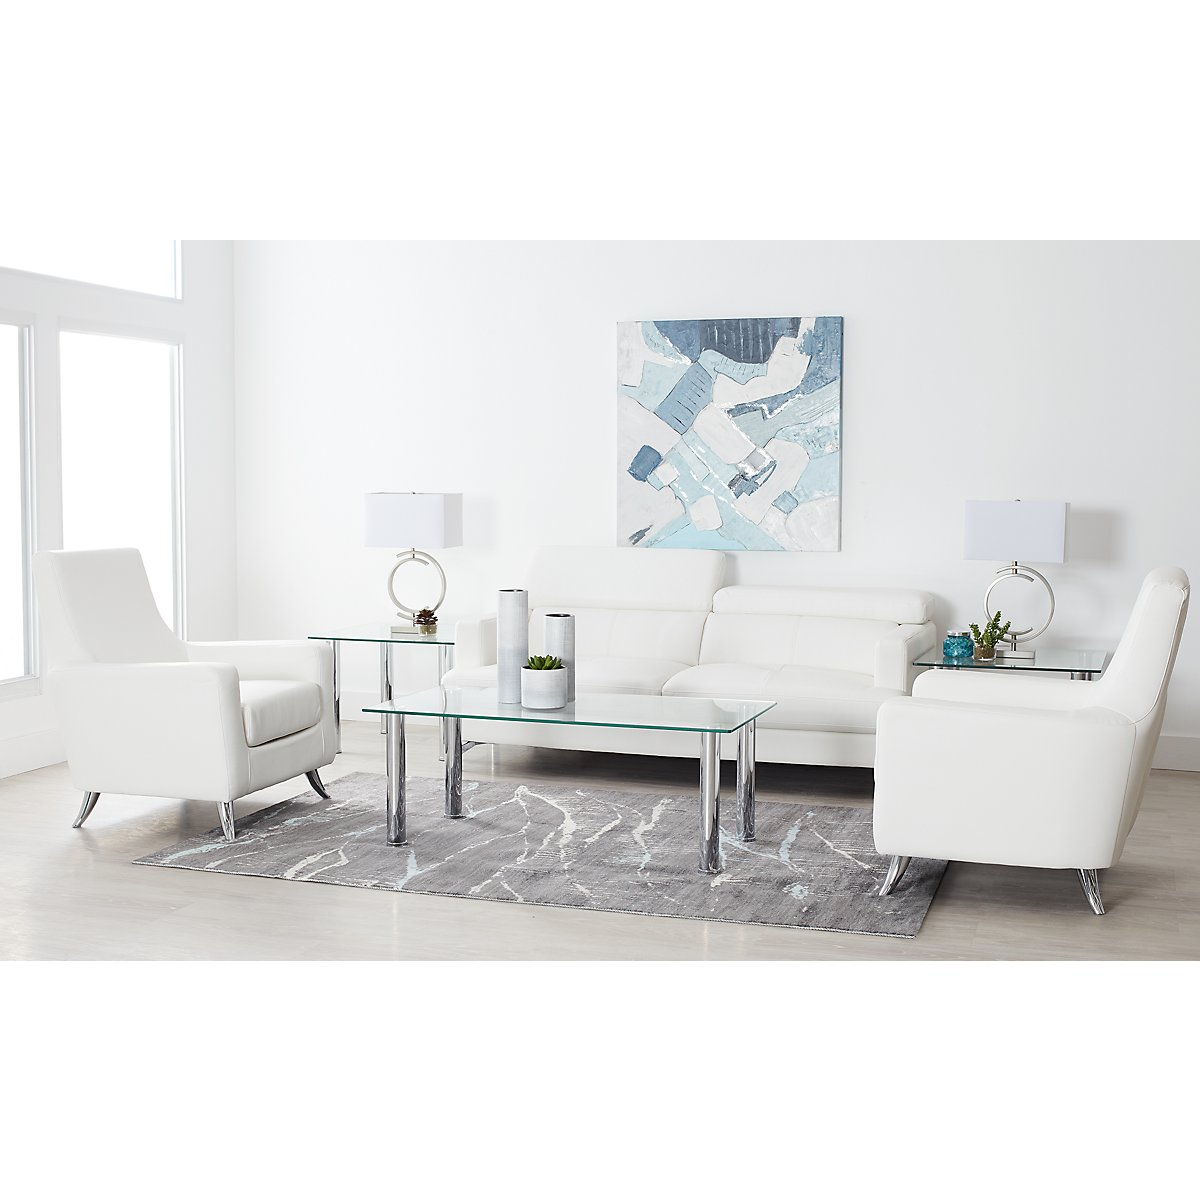 City Furniture: Marquez White Microfiber 8-Piece Living Room Package